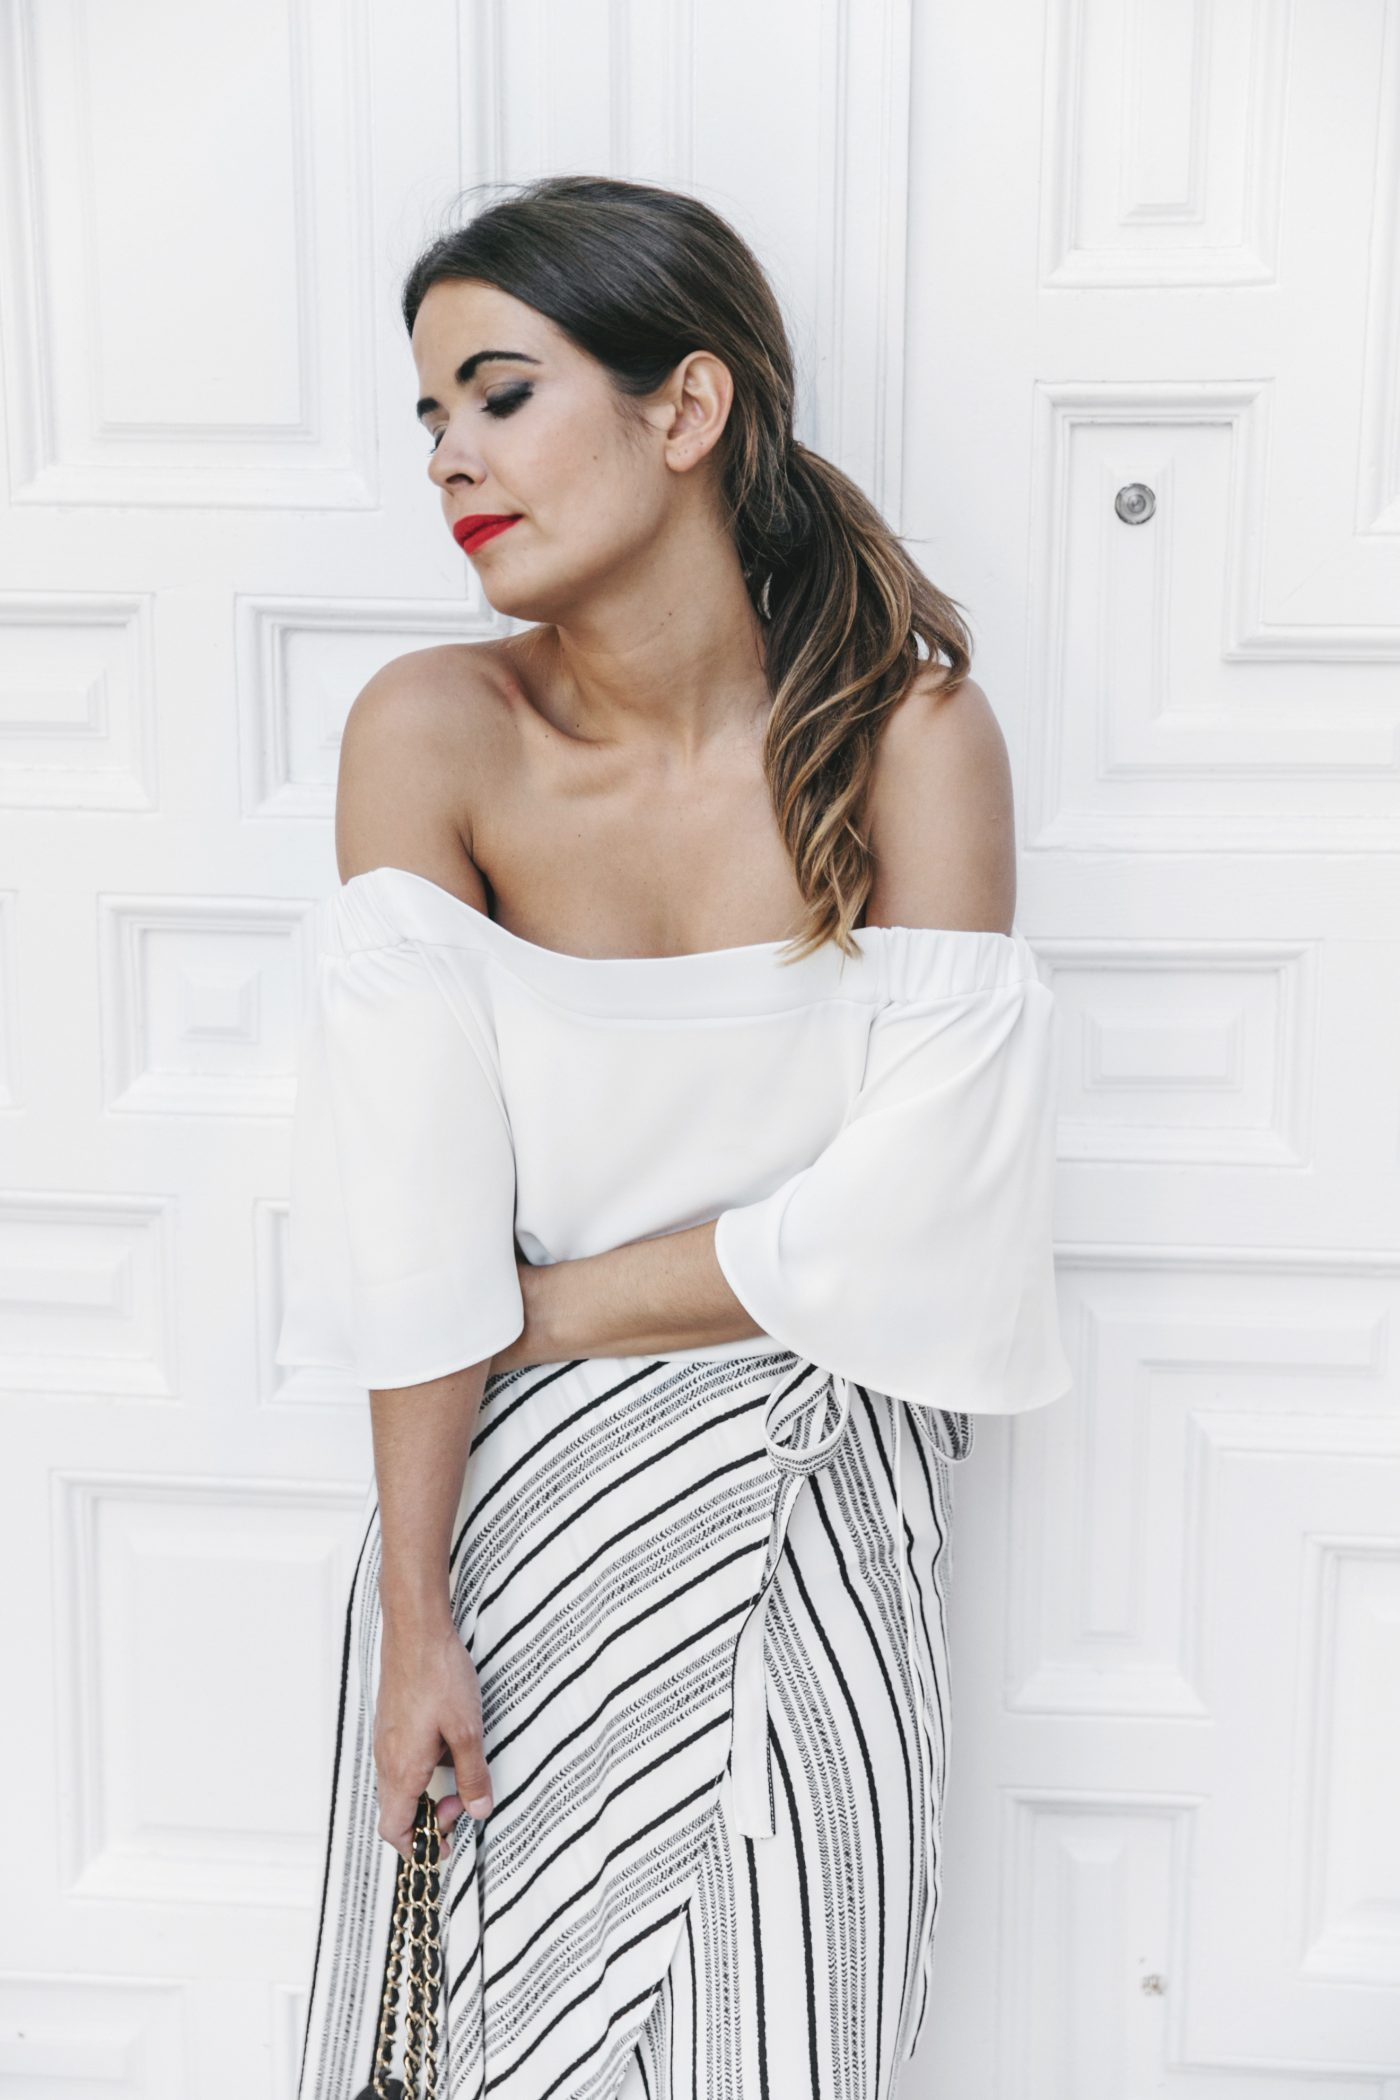 River_Island-El_Imparcial-Striped_SKirt-Off_Shoulders_Top-Lace_Up_Sandals-CHanel_Vintage_Bag-32